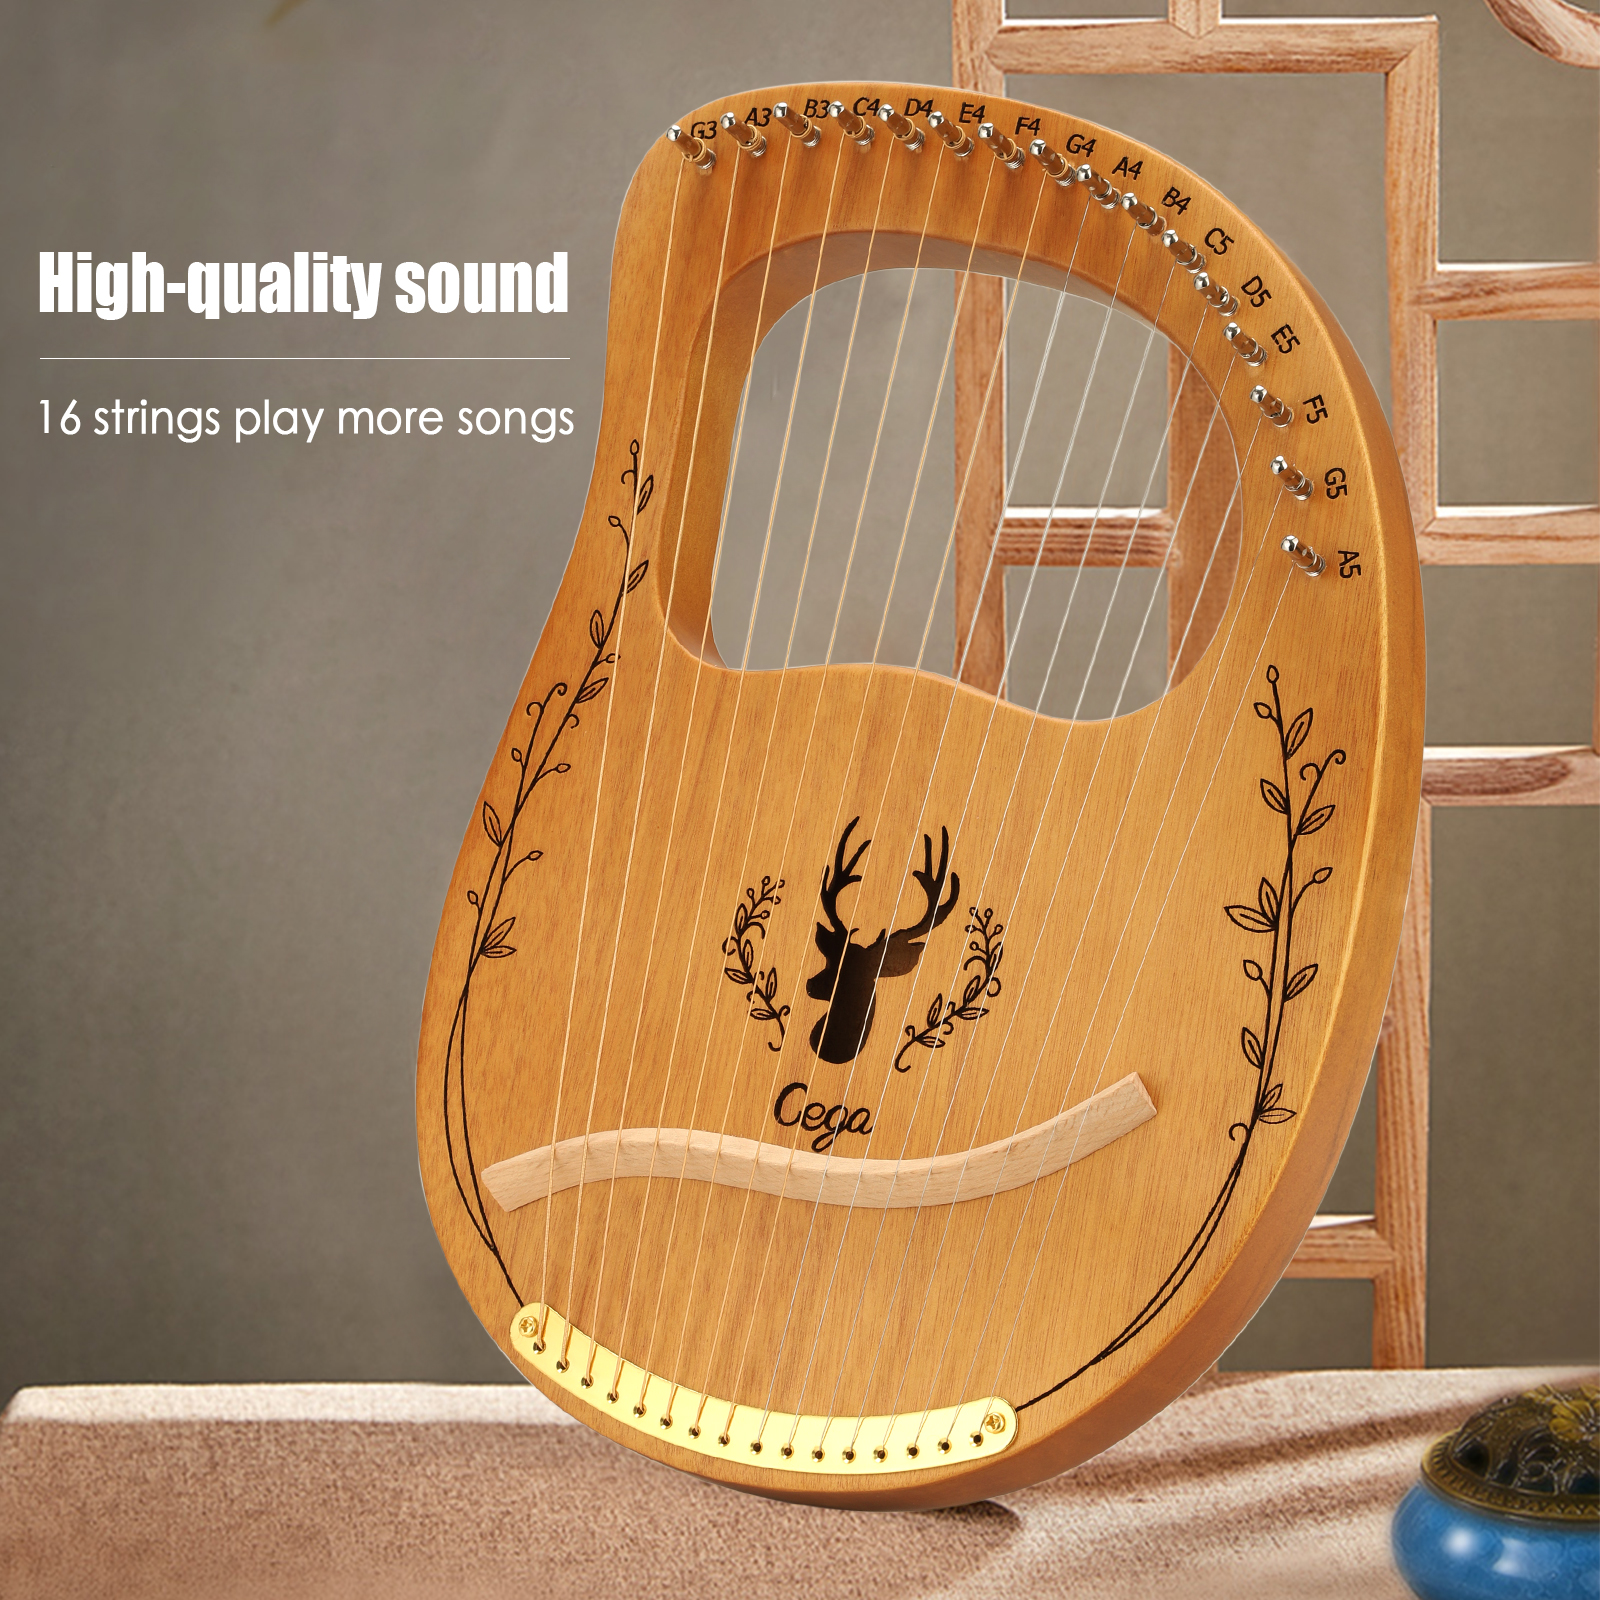 16 -string Lyre Harp/Lyre Harfe With Piano Bag Tuning Wrench String Picks, Suitable For Music Lovers, Beginners Children Adults